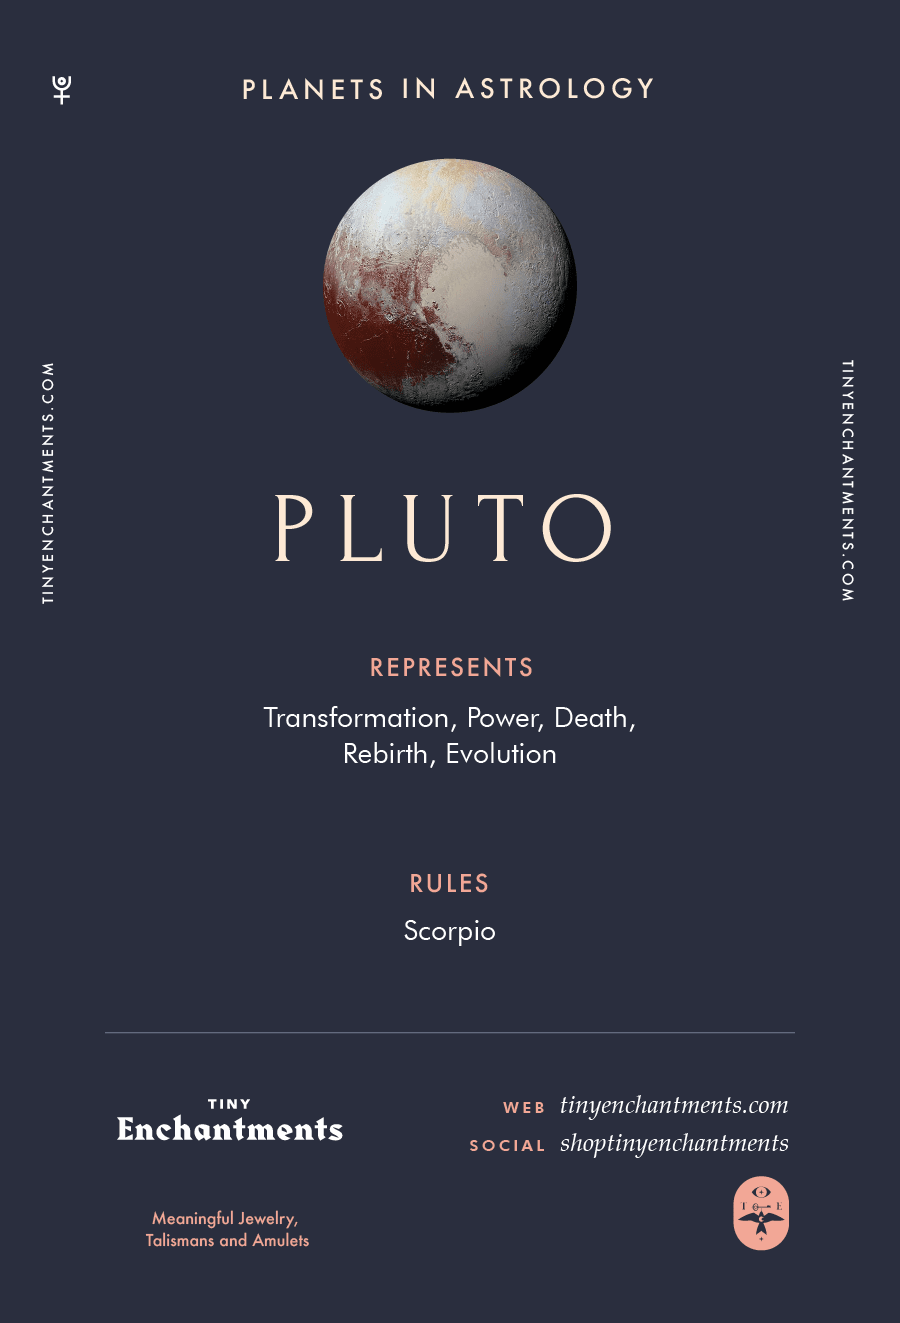 Pluto Sign in Astrology - Planet Meaning, Zodiac, Symbolism